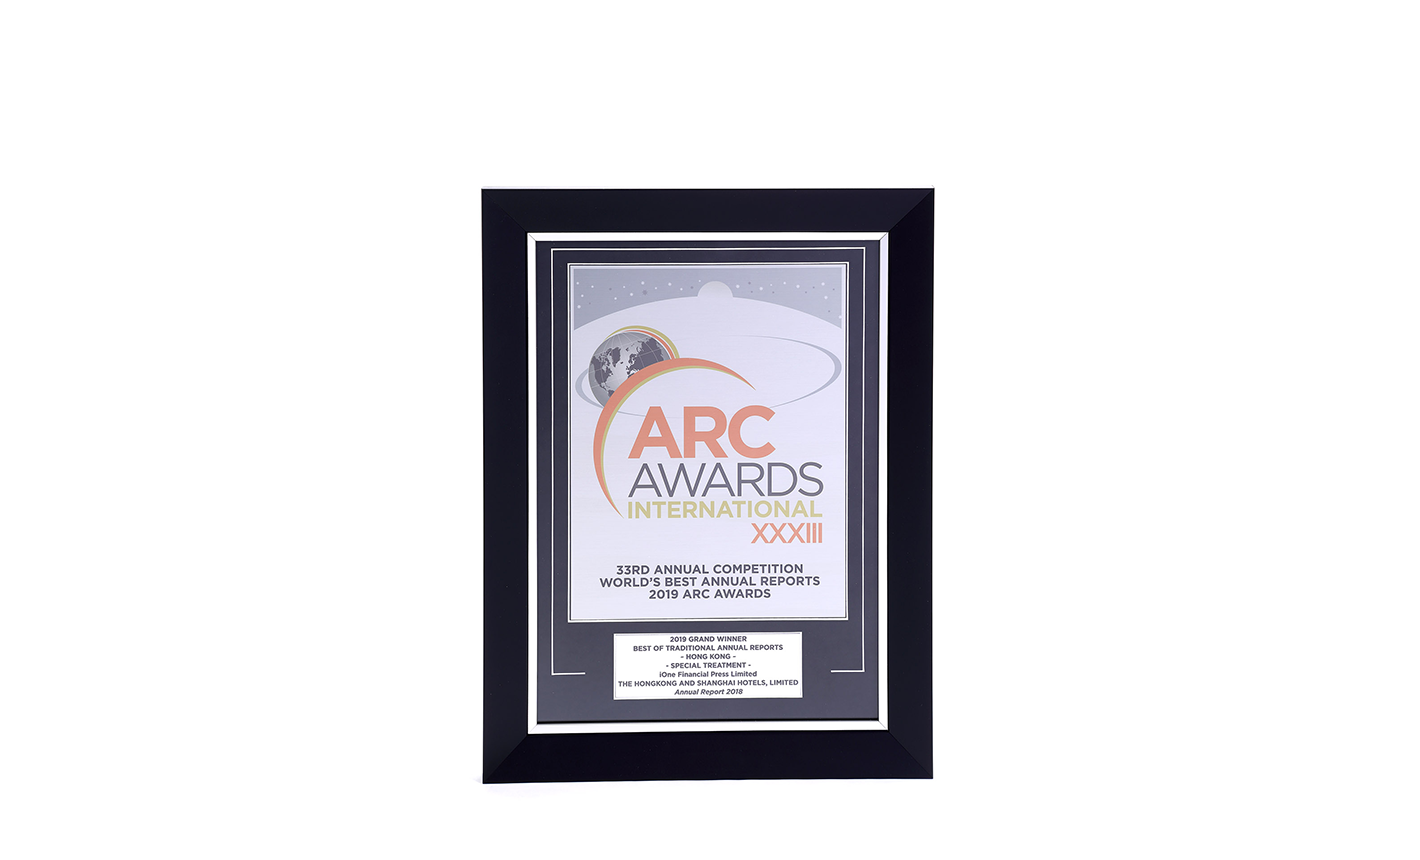 2019 ARC awards traditional annual reports